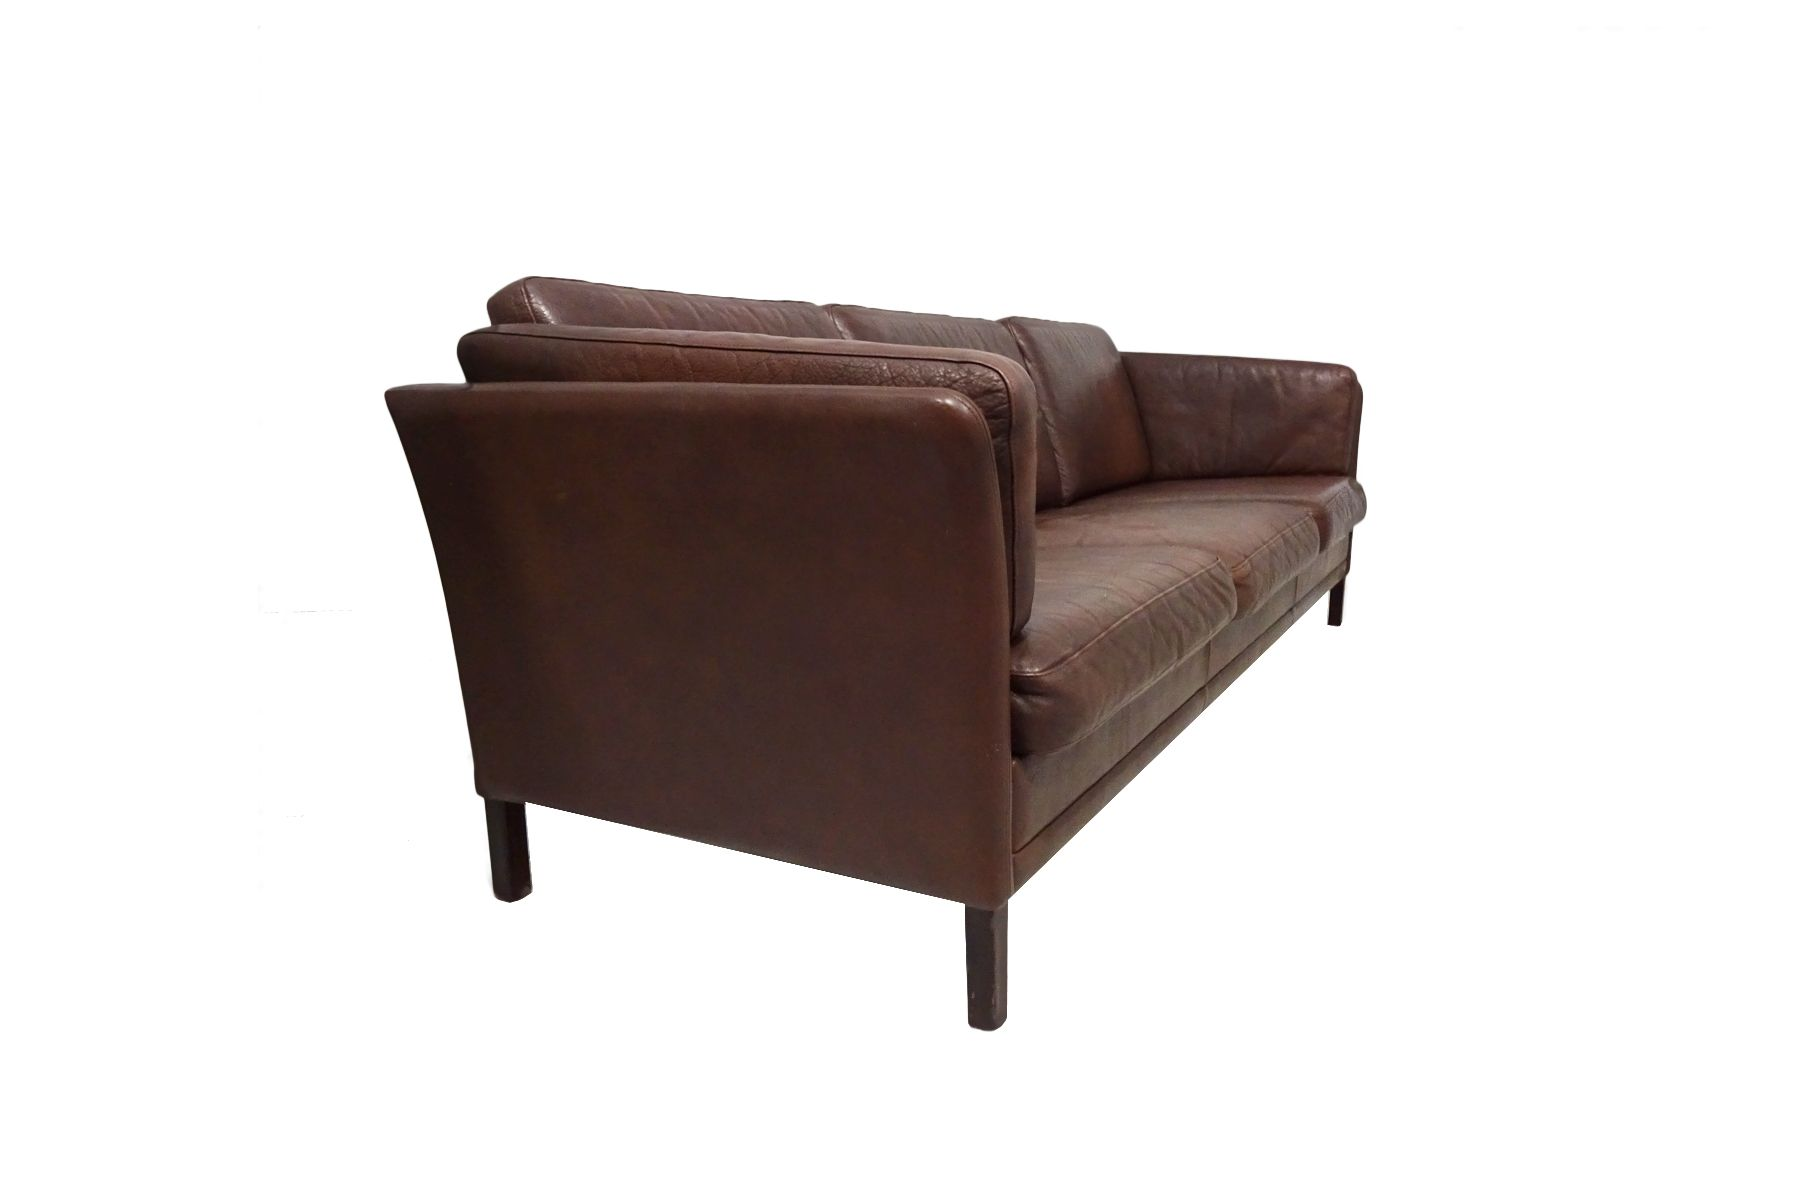 Model Mh2225 Danish Mid Century Sofa By Mogens Hansen